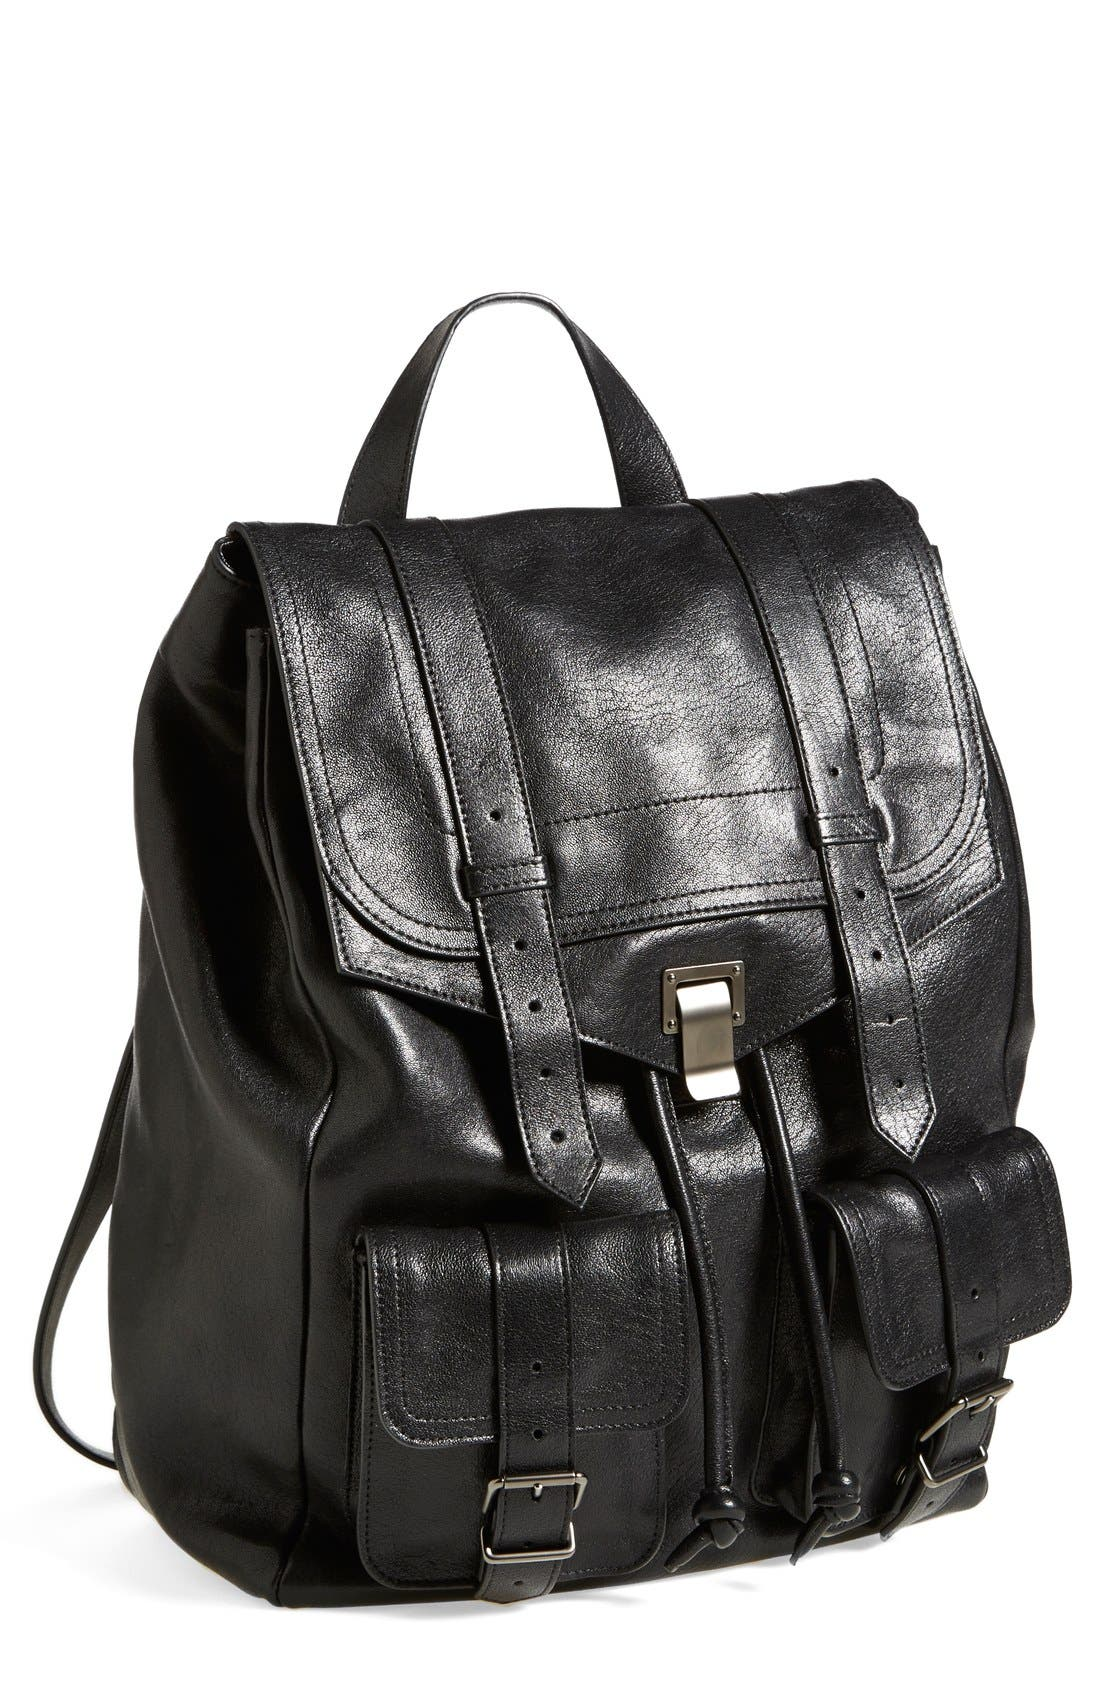 Alternate Image 1 Selected - Proenza Schouler 'PS1' Leather Backpack